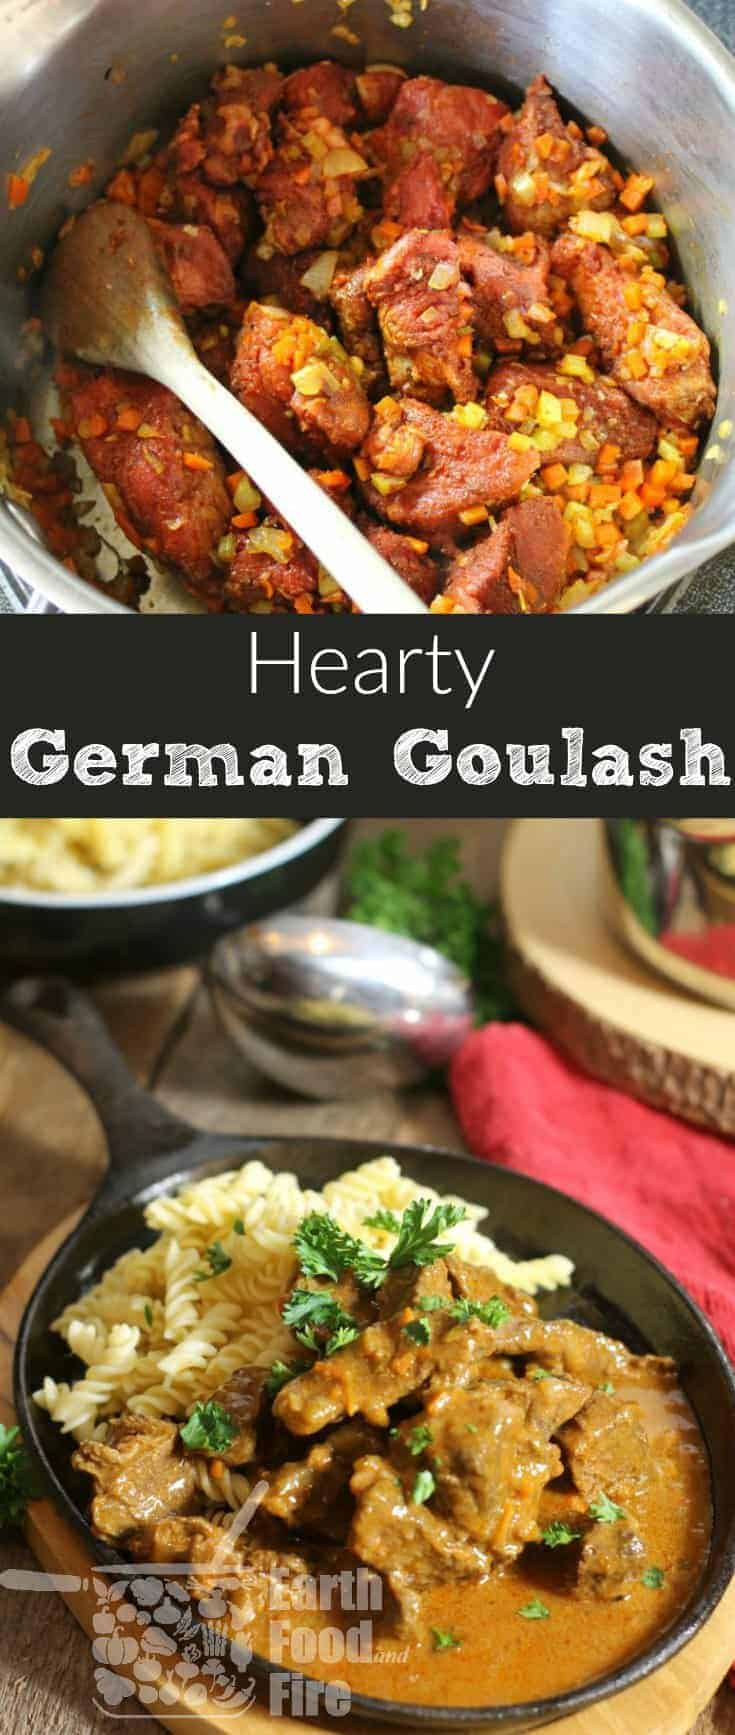 Slowly stewed, this hearty dish is the definition of comfort food! Learn how to make this simple German Goulash from scratch yourself. #goulash #beef #crockpot